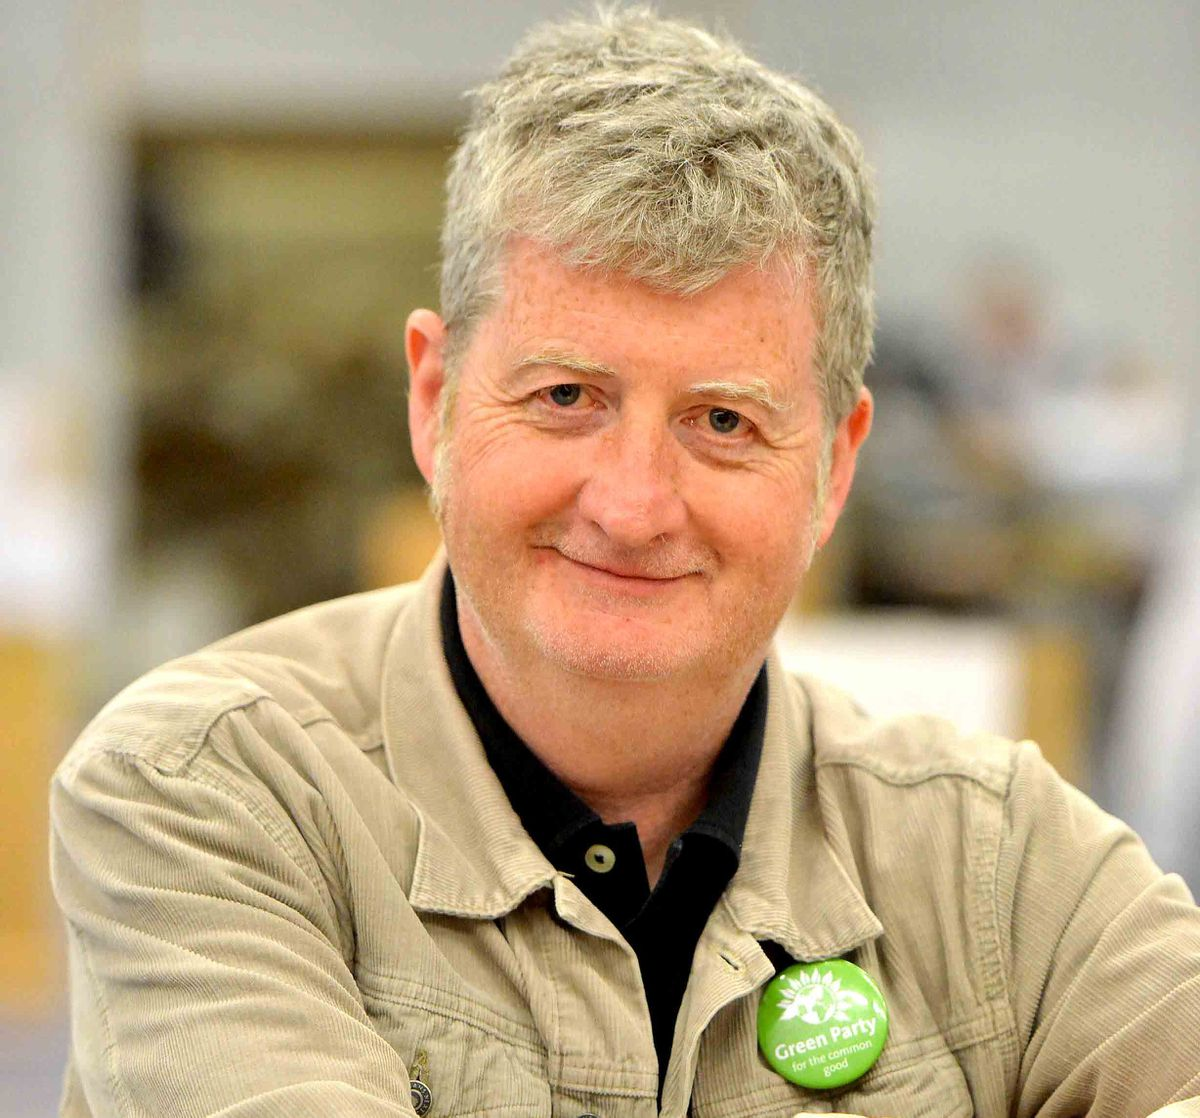 Green Party councillor Julian Dean is standing for re-election